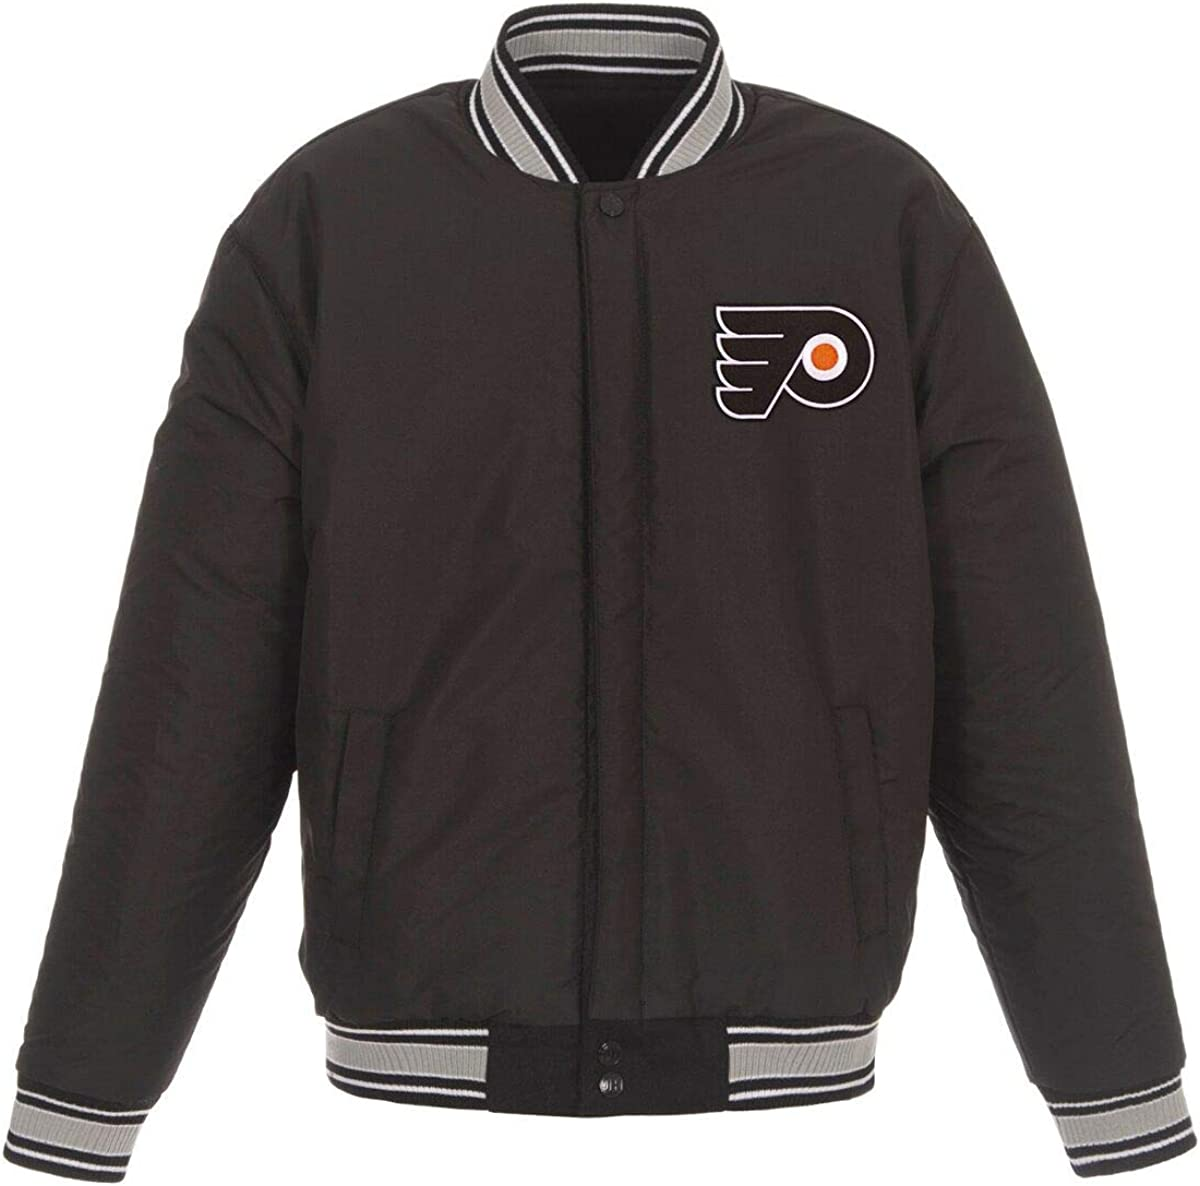 J.H Design Philadelphia Flyers NHL Black Gray Wool Reversible Full Snap Jacket